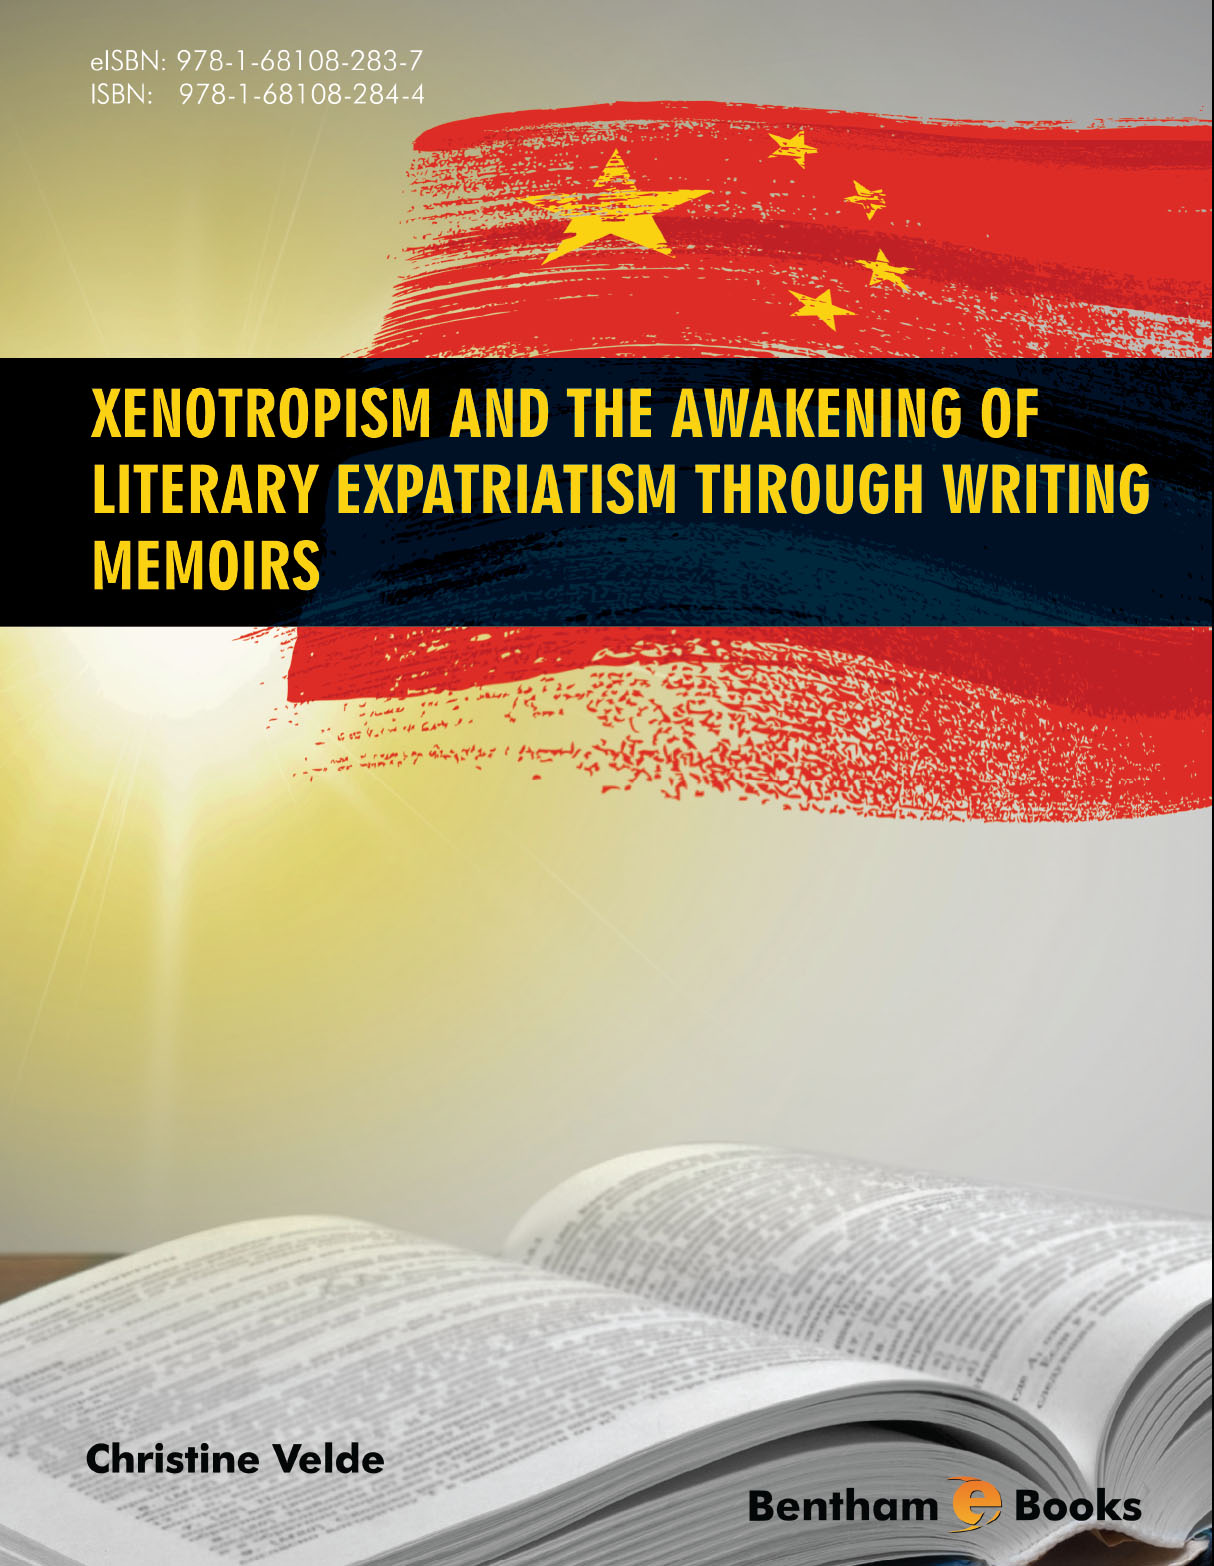 Xenotropism and the Awakening of Literary Expatriatism through Writing Memoir